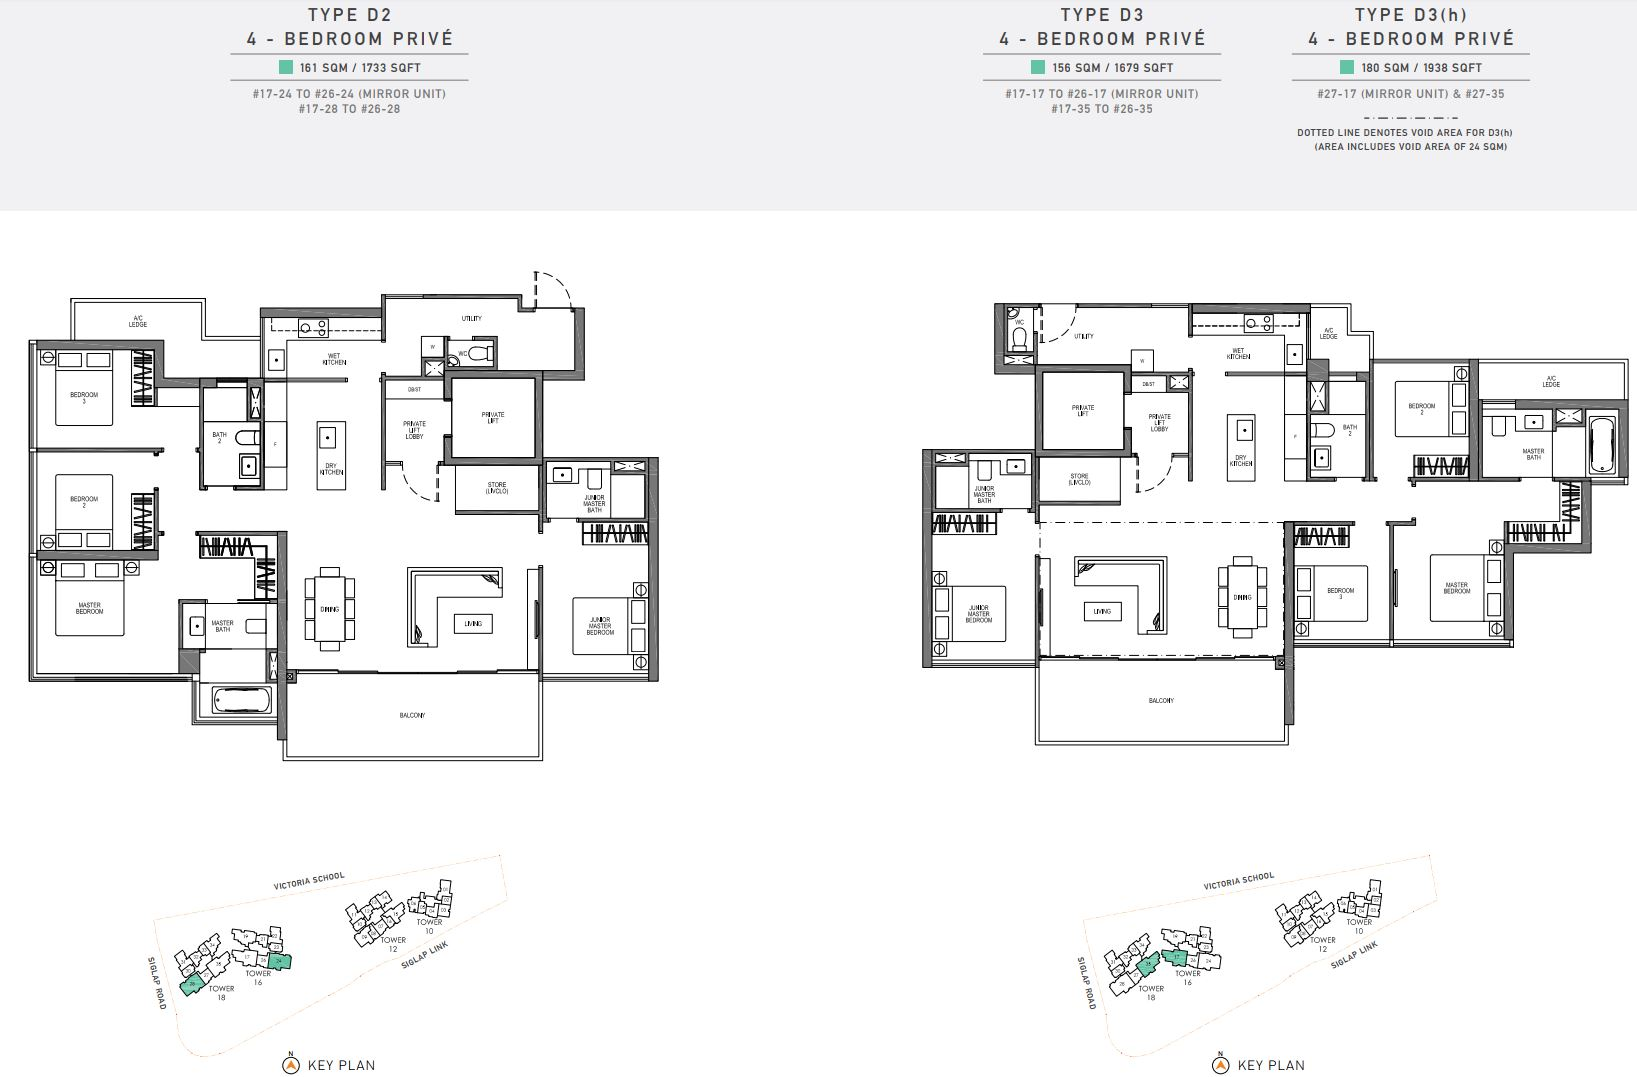 Seaside Residences FloorPlan - 4 Bedroom Prive